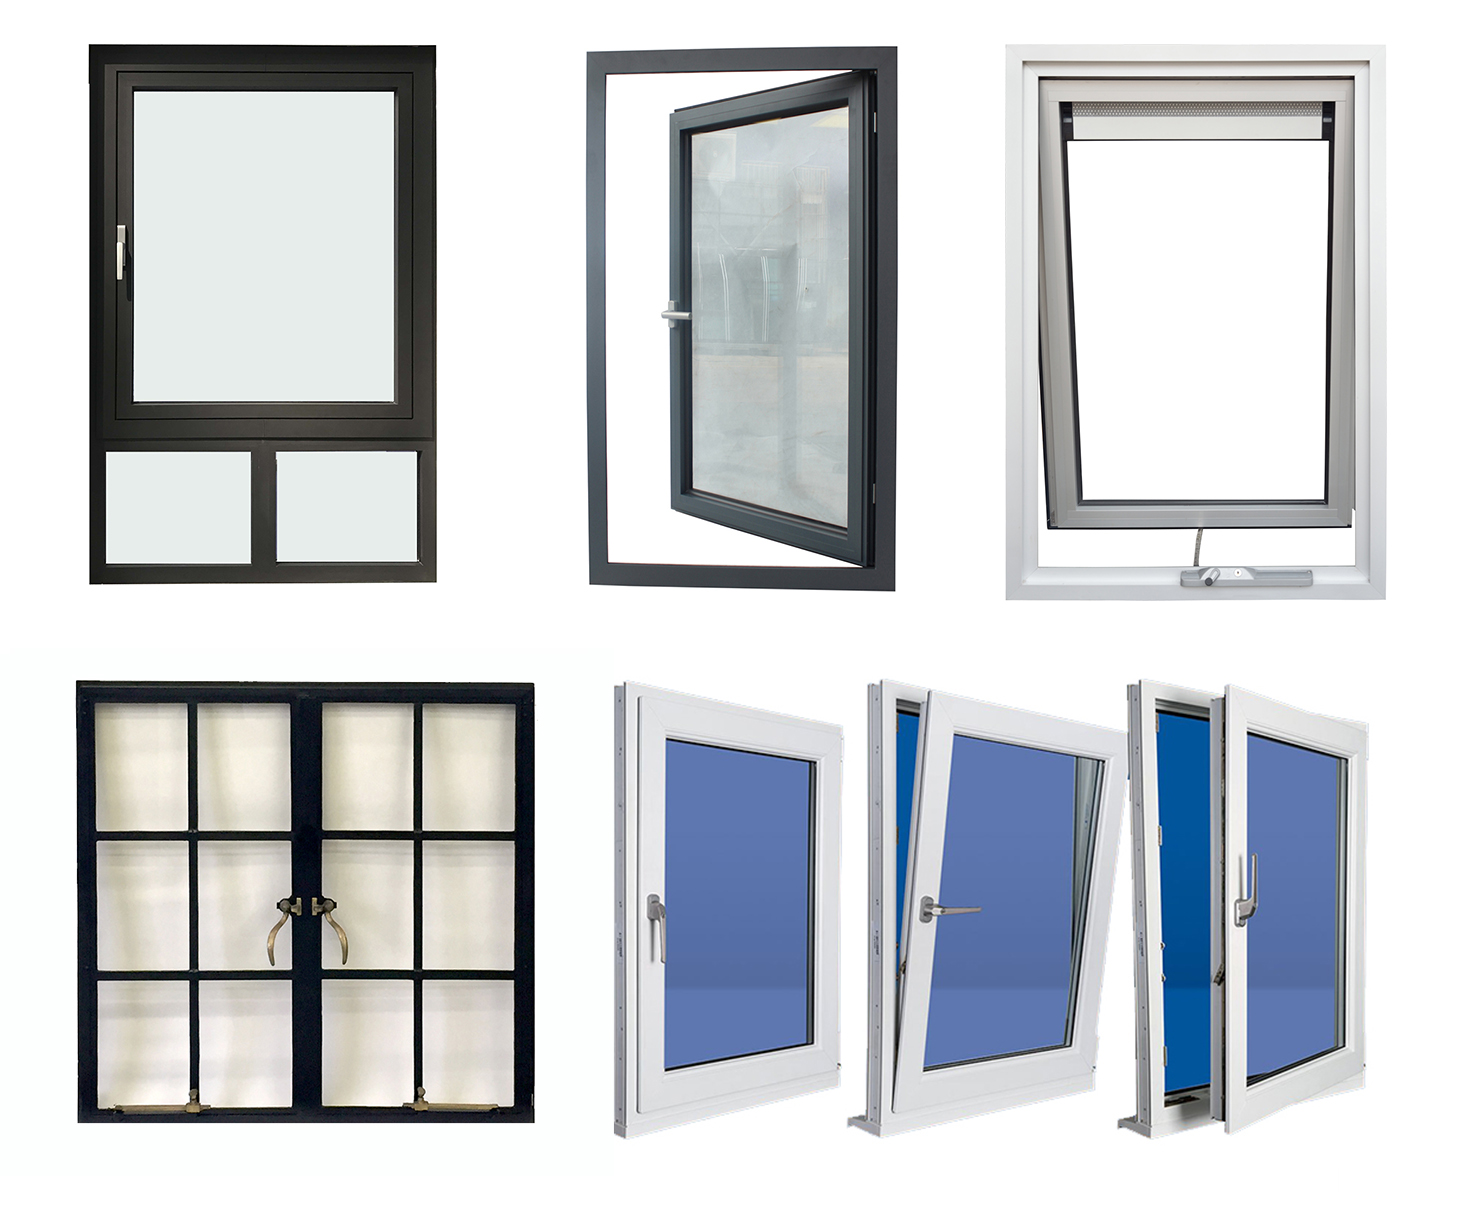 commercial system double glazed insulating glass shutter windows